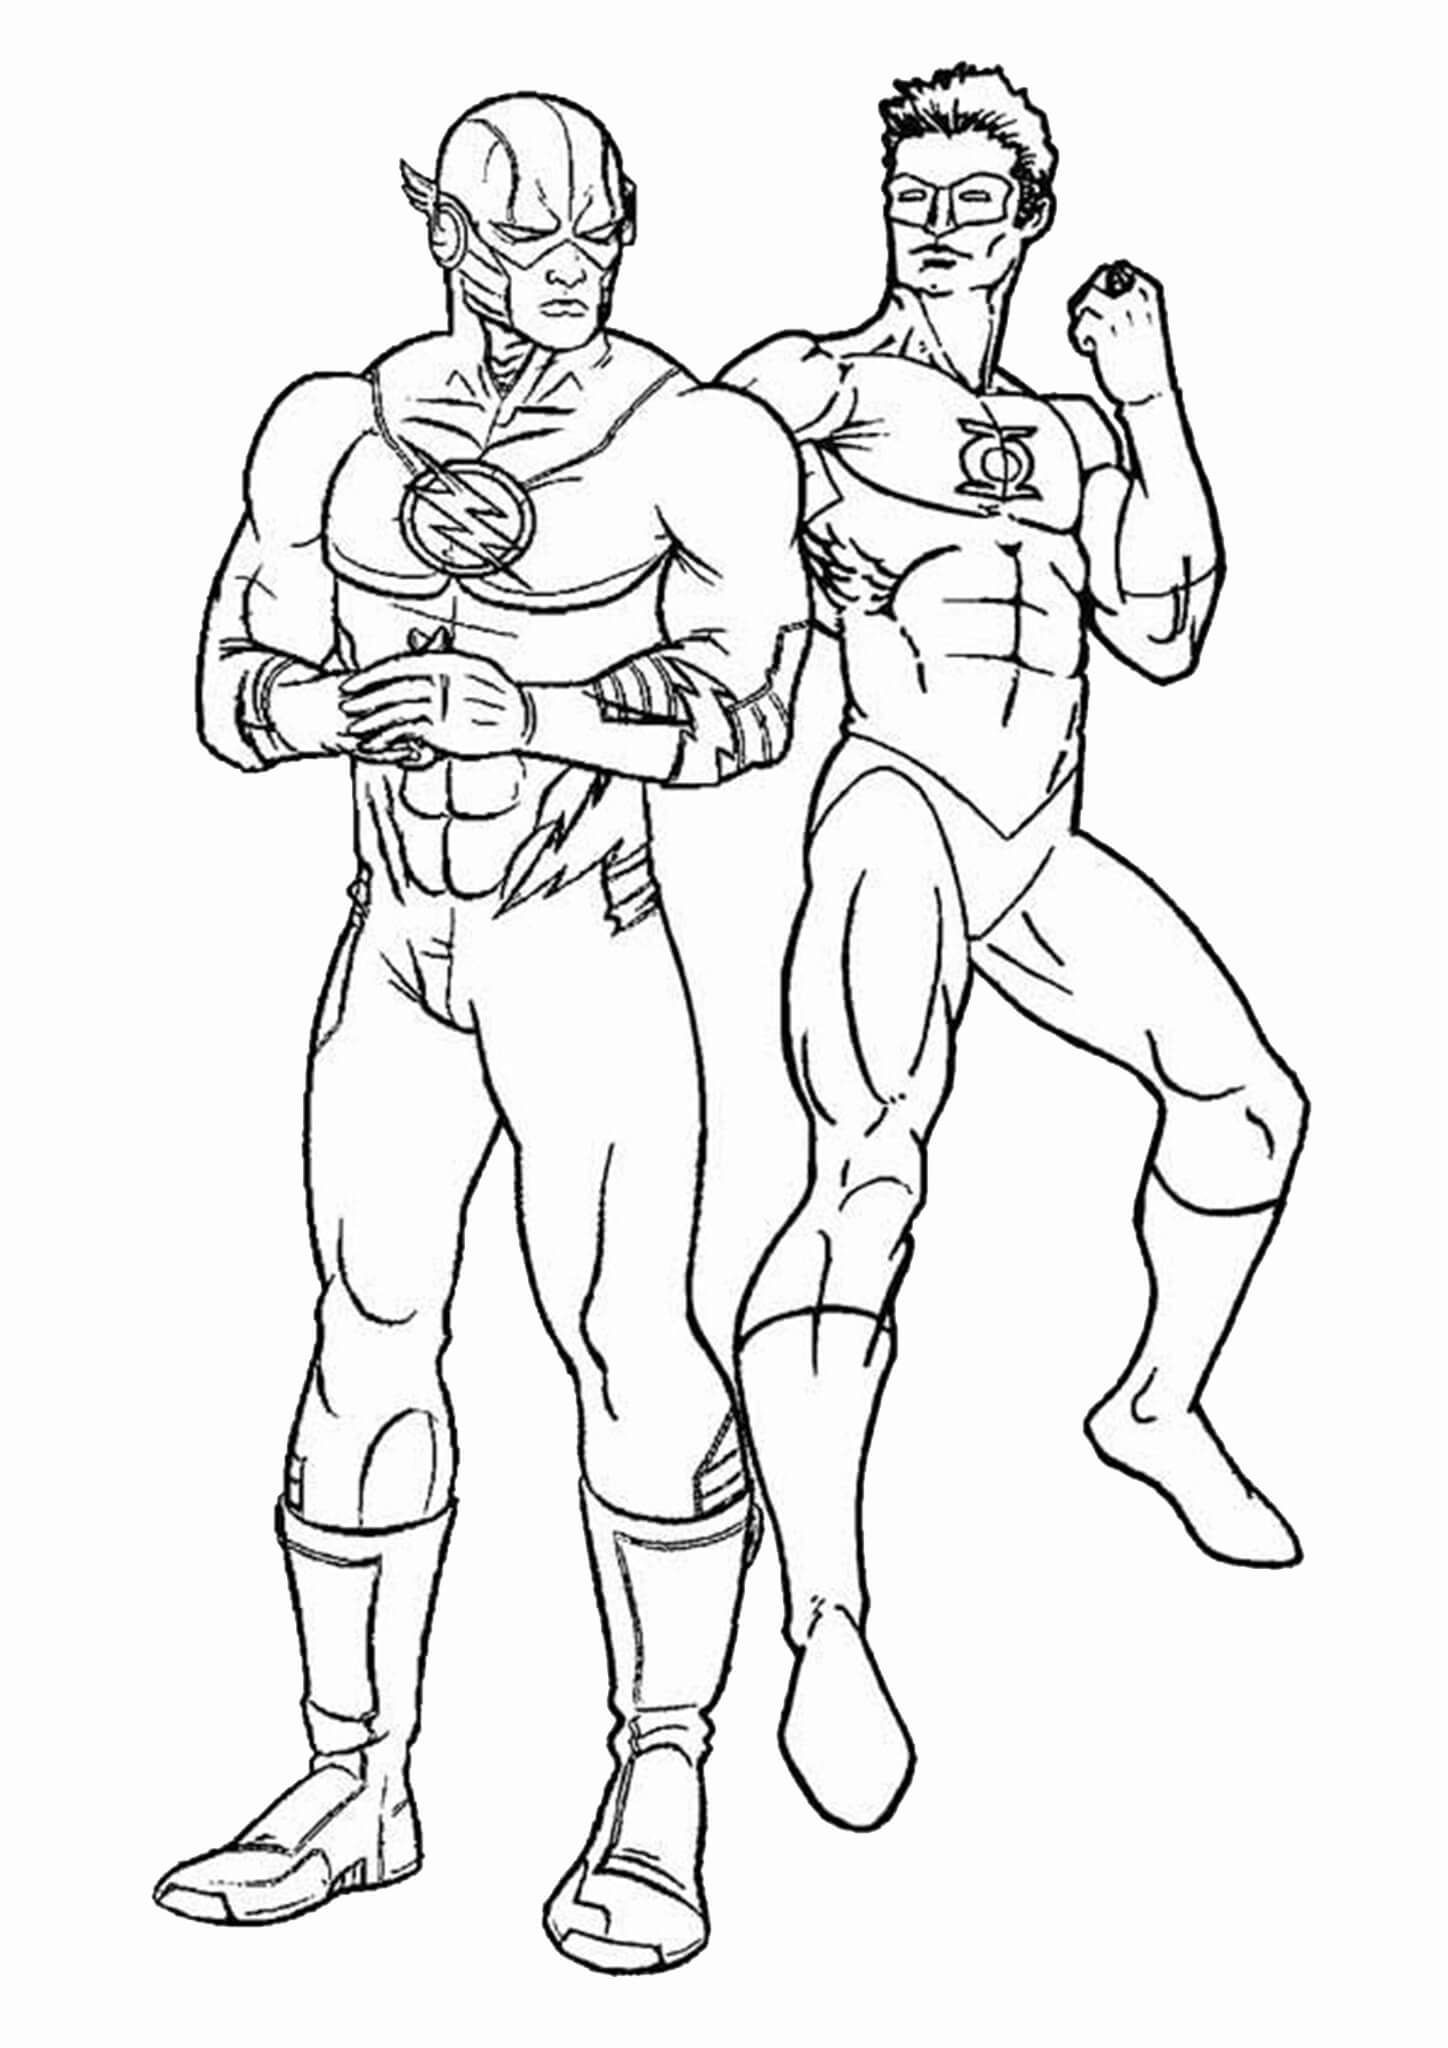 Free Easy To Print Flash Coloring Pages Superhero Coloring Pages Superhero Coloring Cartoon Coloring Pages